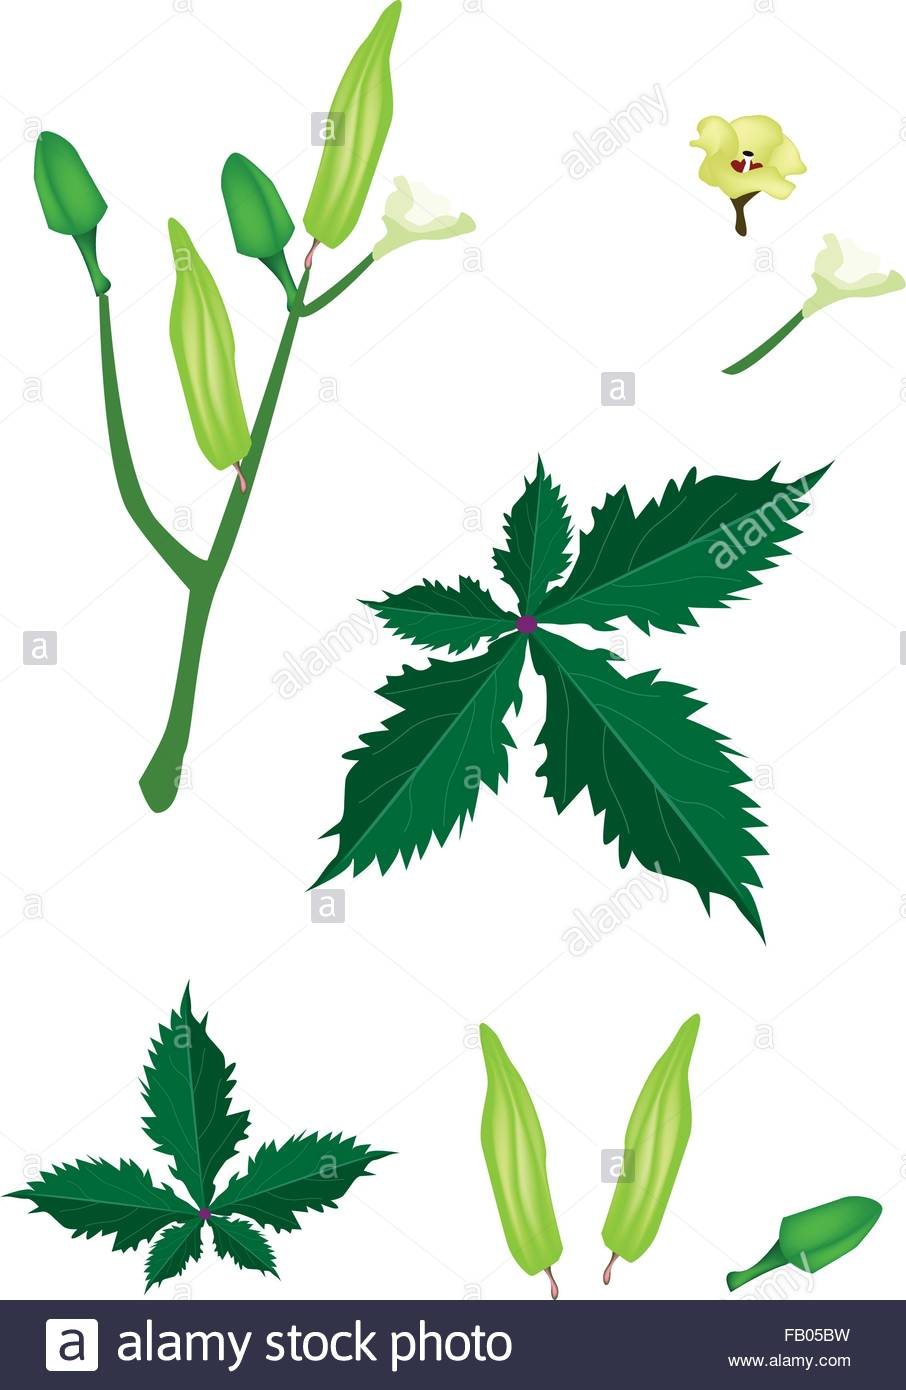 Vegetable and Herb, Vector Illustration Parts of Okra or Lady.